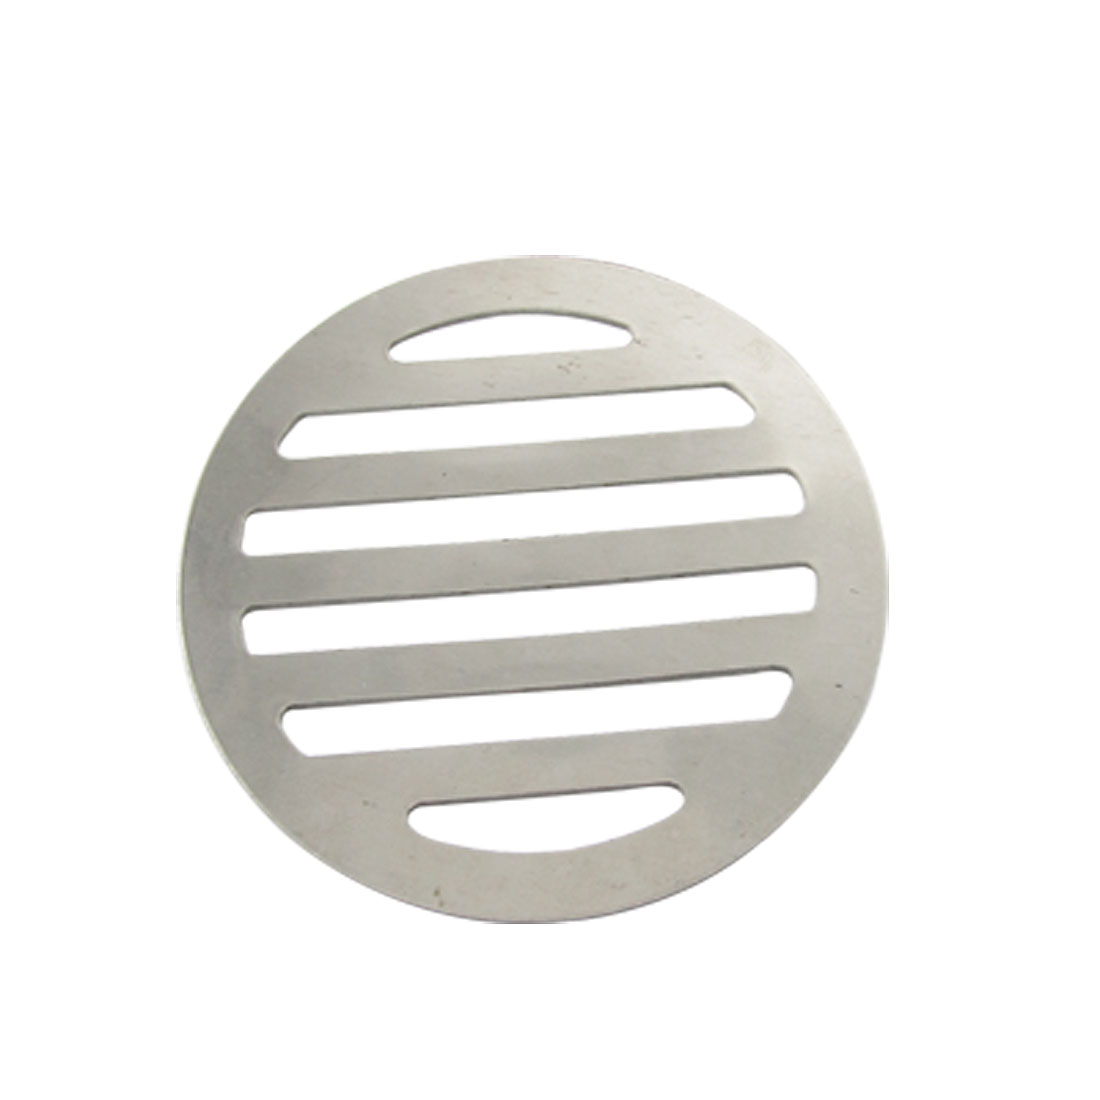 7.5cm Diameter Round Stainless Steel Floor Drain Cover